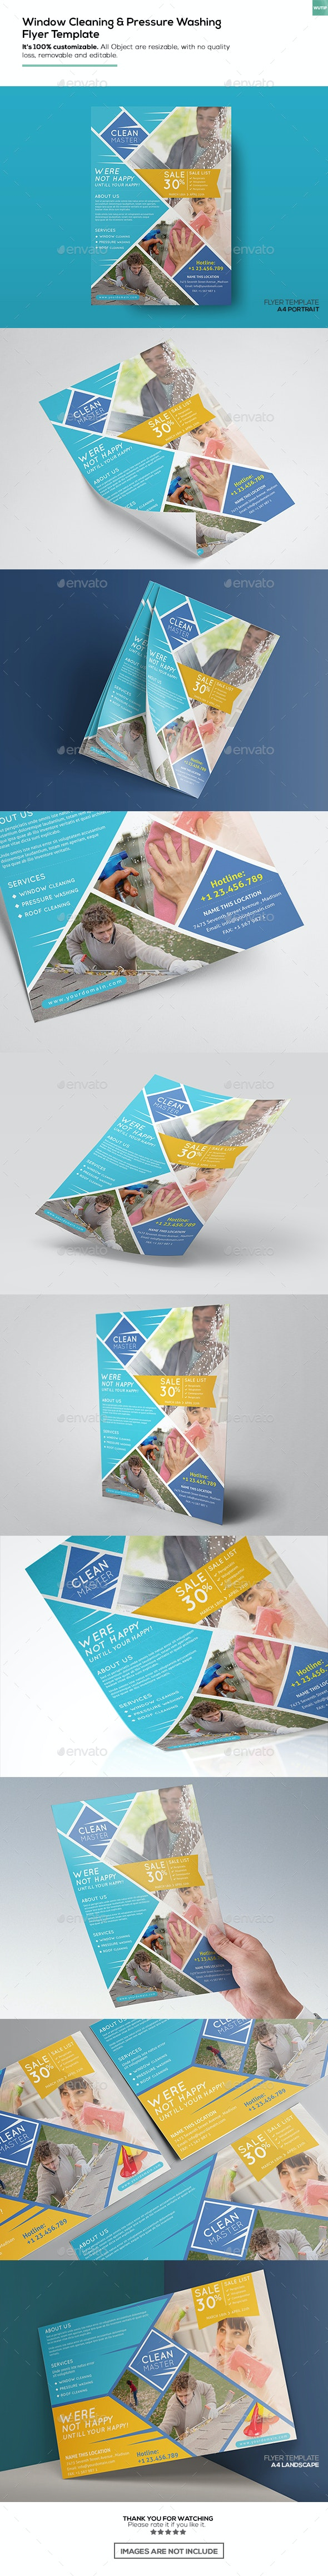 Window Cleaning & Pressure Washing/ Flyer Template - Corporate Flyers